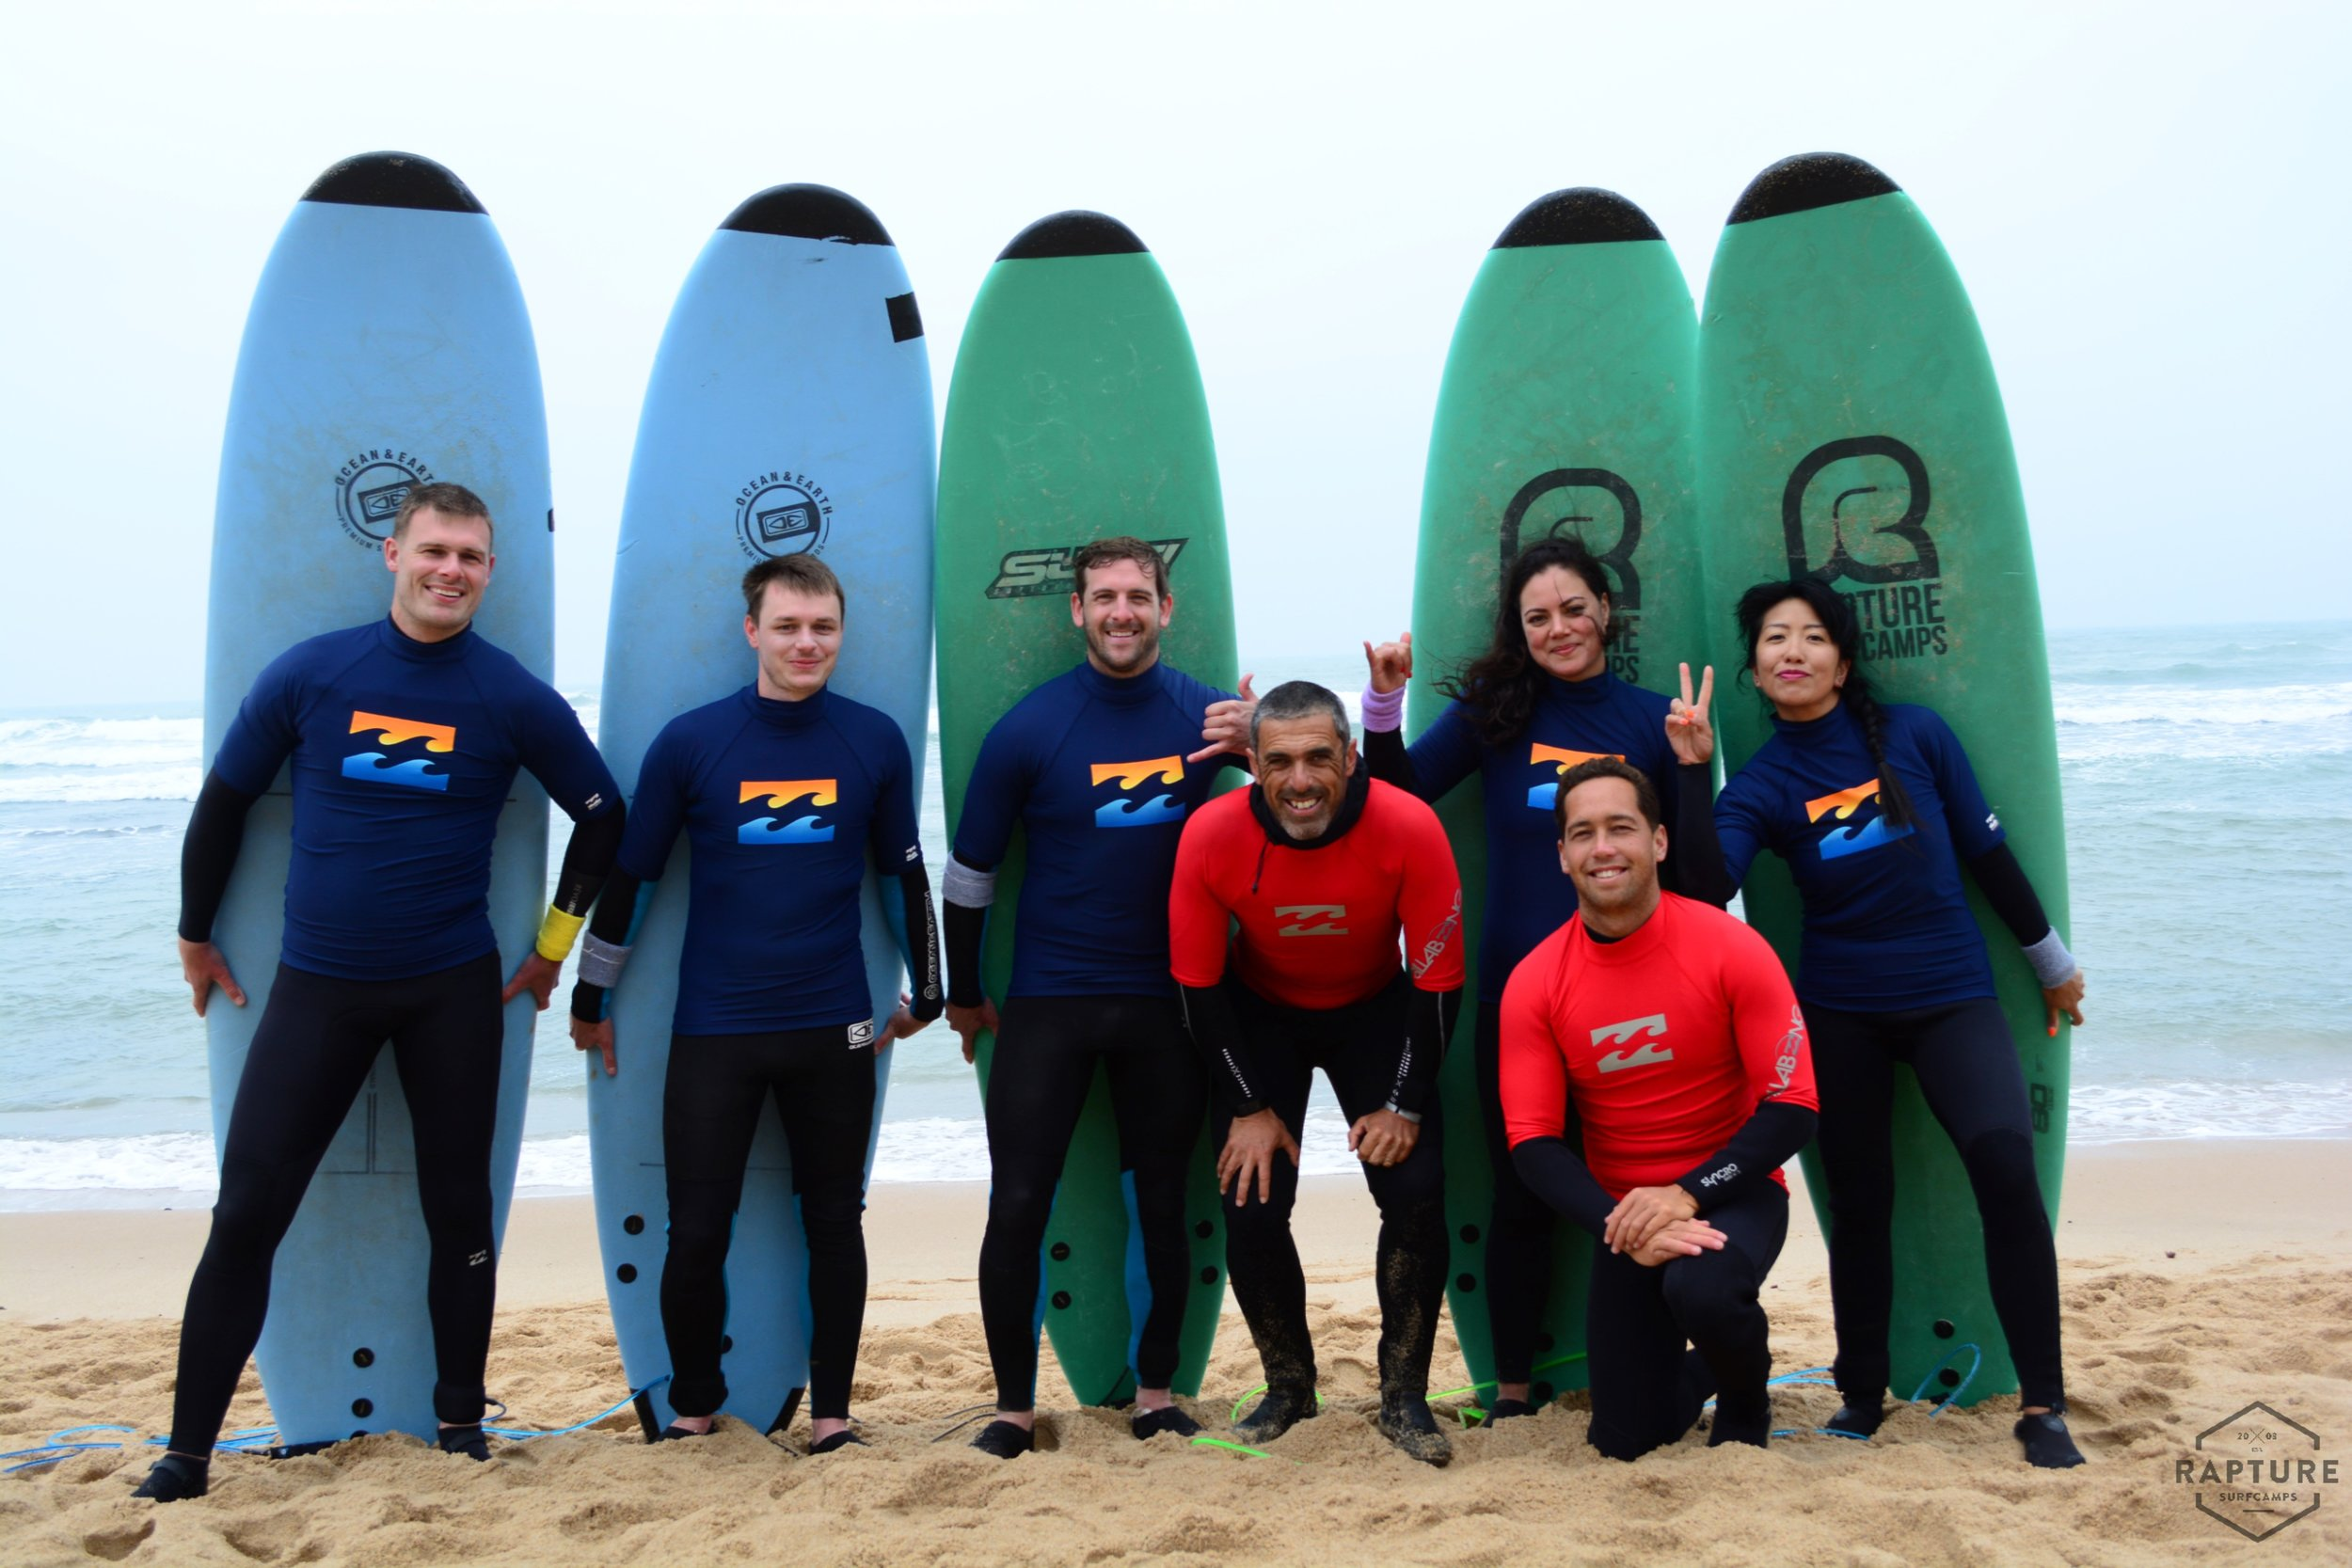 With our surf instructors